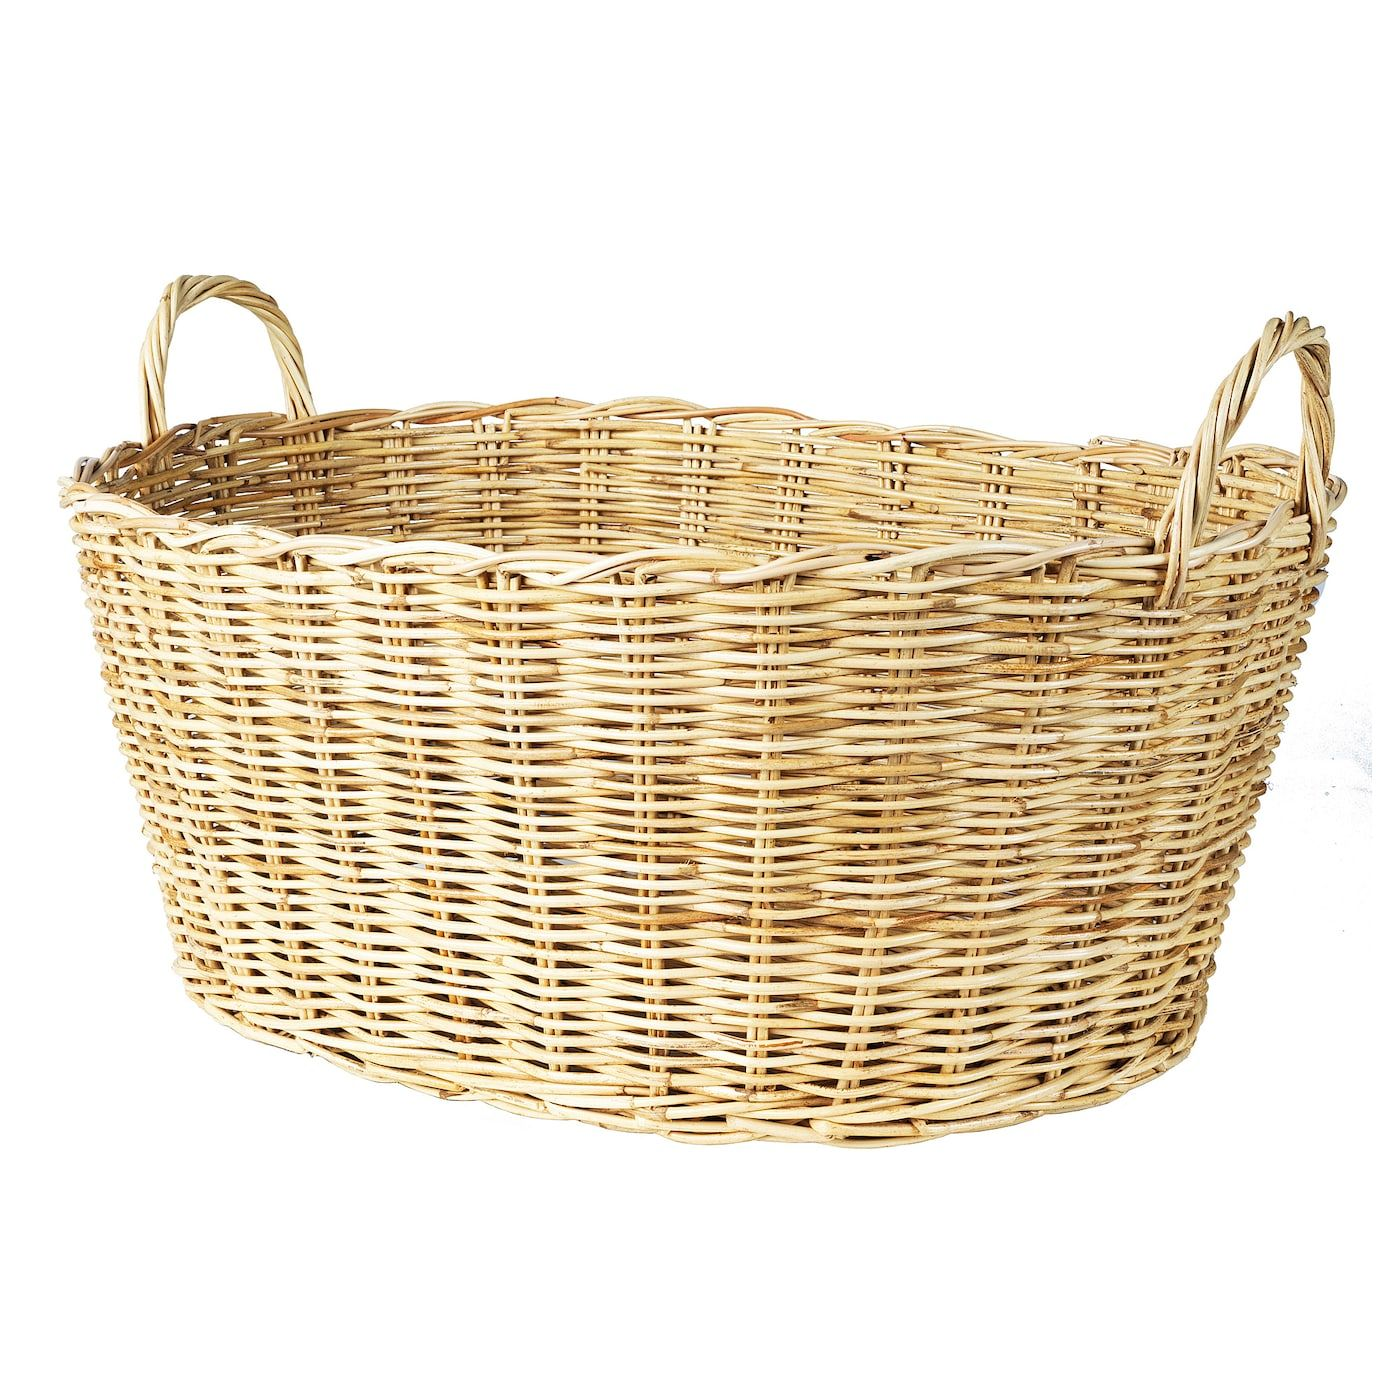 Borstad Basket With Handles 23 X18 In 2020 Ikea Laundry